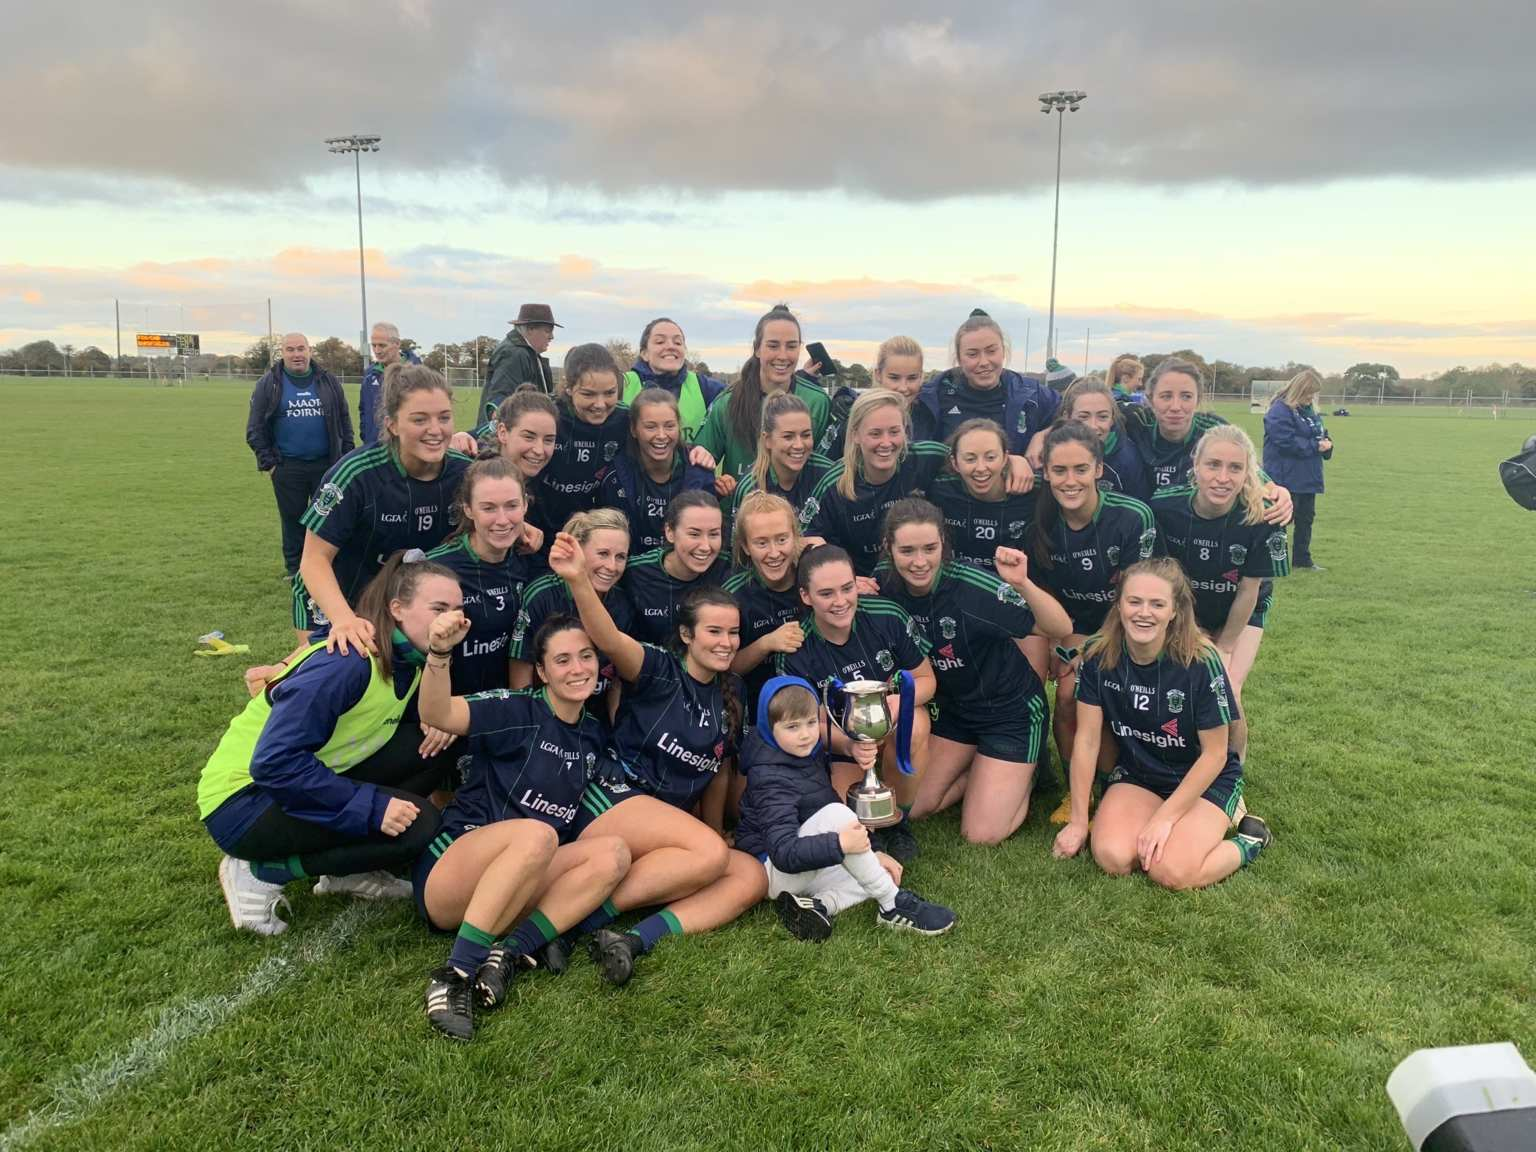 Foxrock Cabinteely players celebrating on the pitch after winning their Fifth Leinster Senior ladies Footballers title one a row.